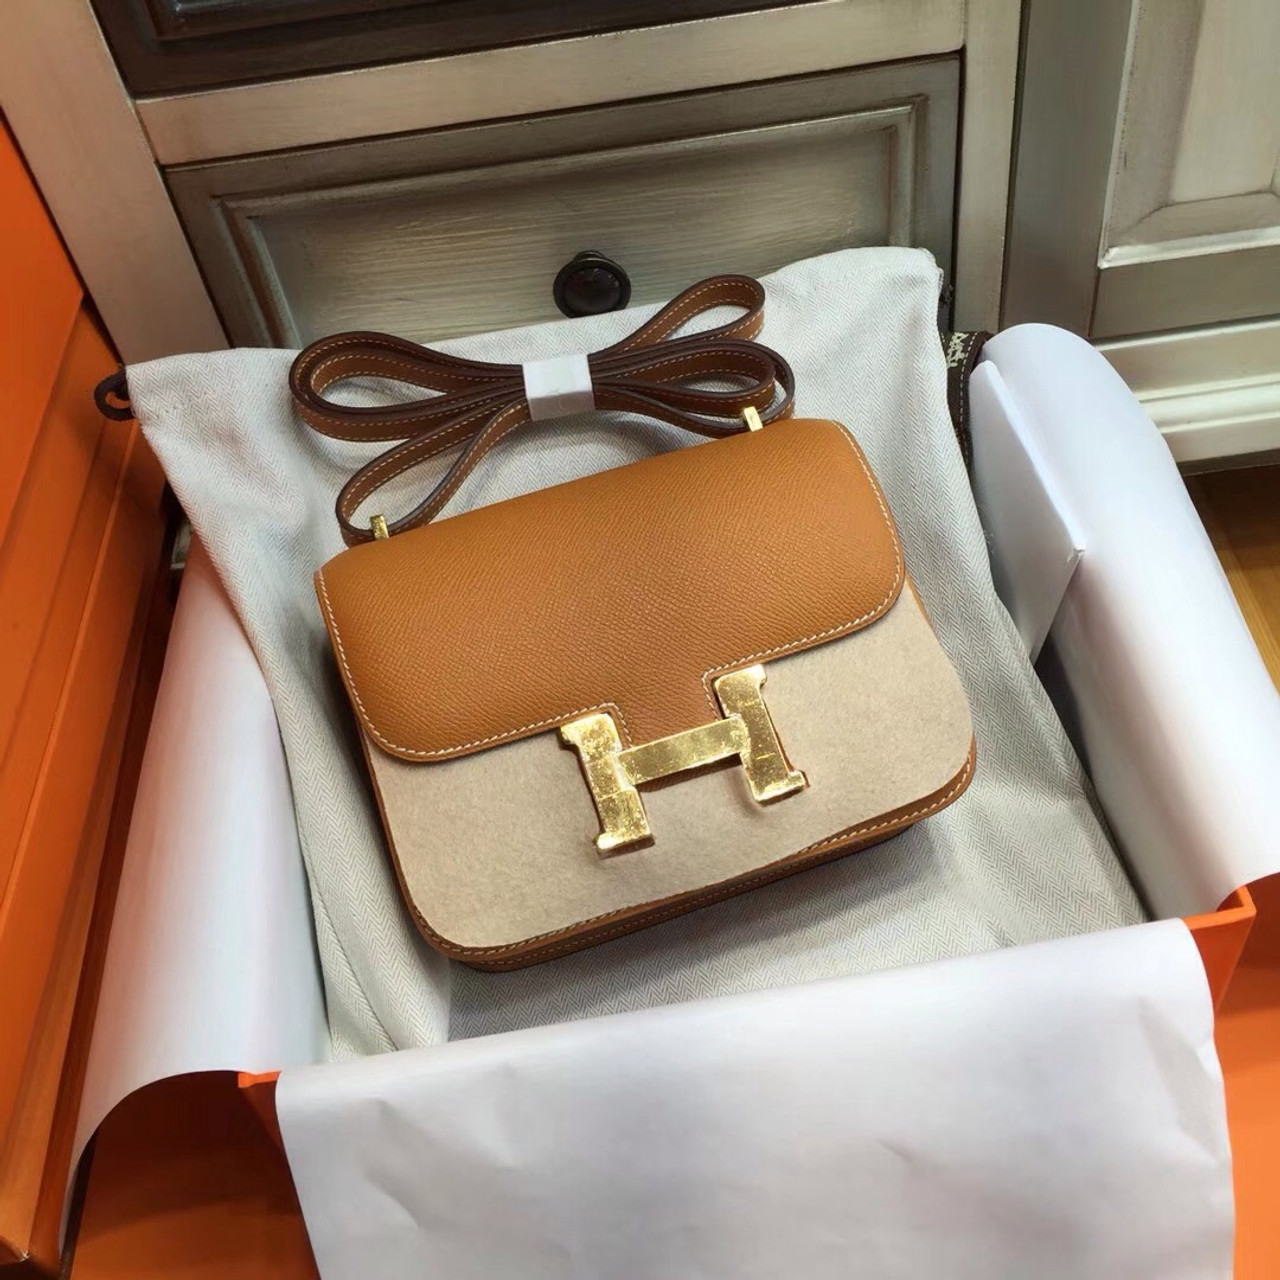 7bf6cc52e2a5 ... new arrivals hermes toffee constance epsom leather 18cm gold hardware  08190 b11aa